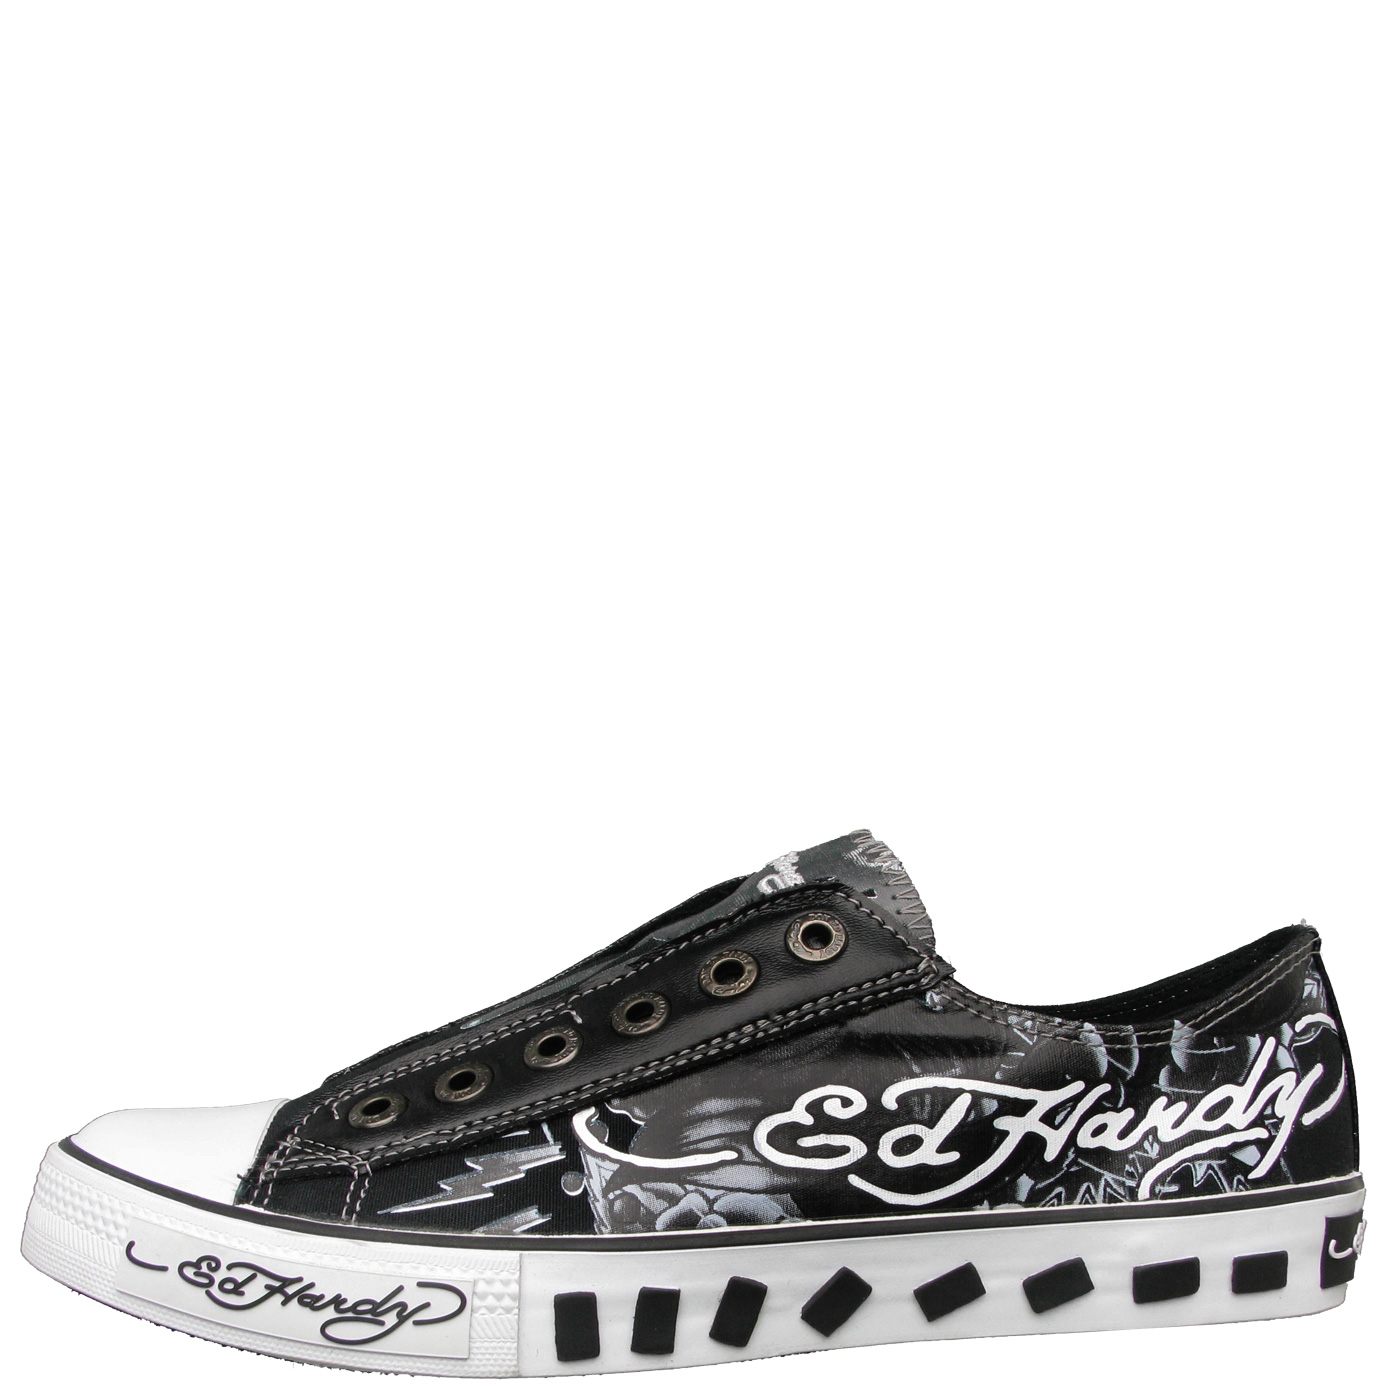 Ed Hardy Lowrise Van Nuys Shoe for Kids - Black